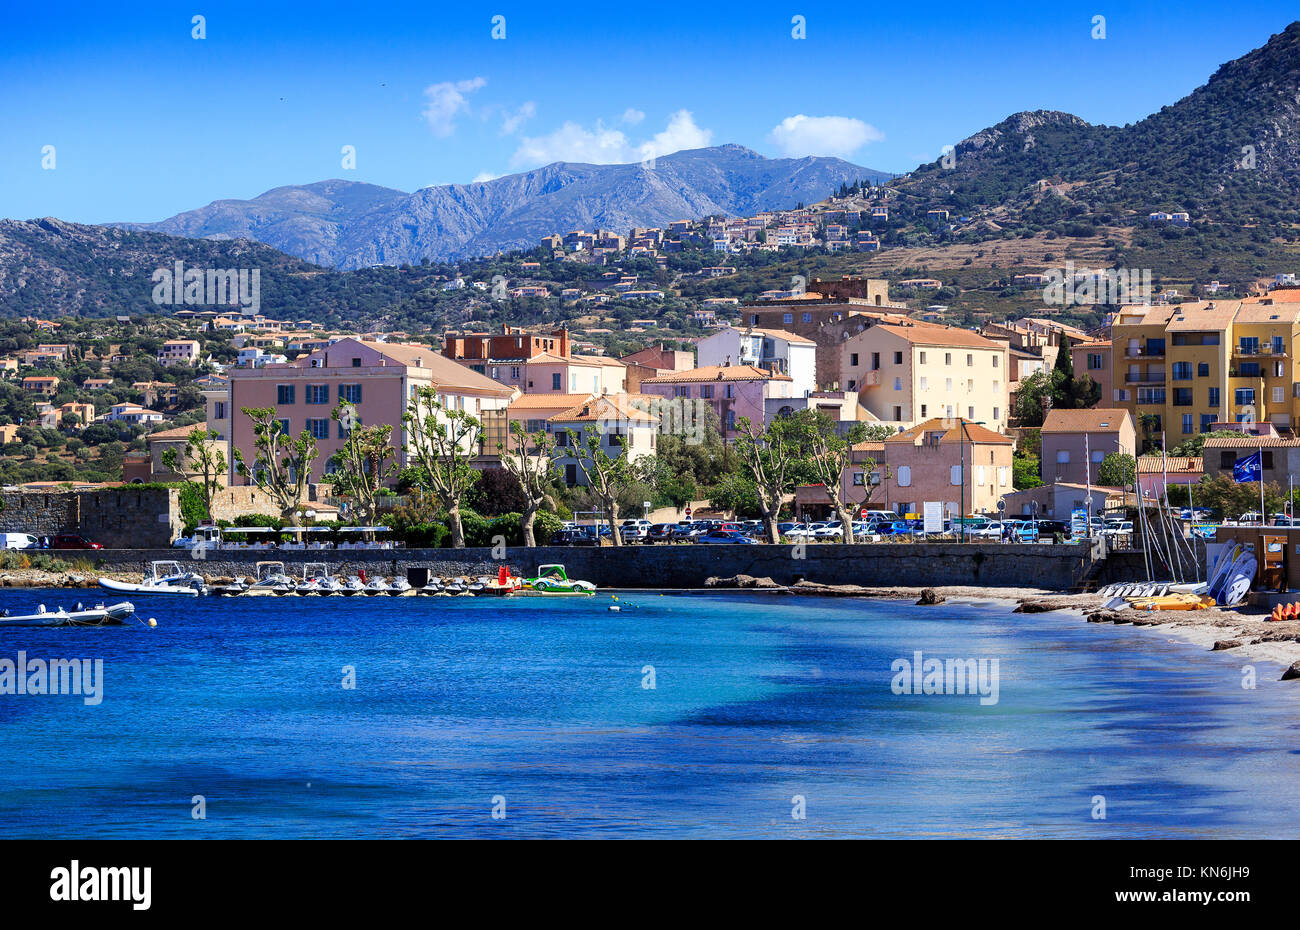 Ille Rousse, Corsica - Stock Image